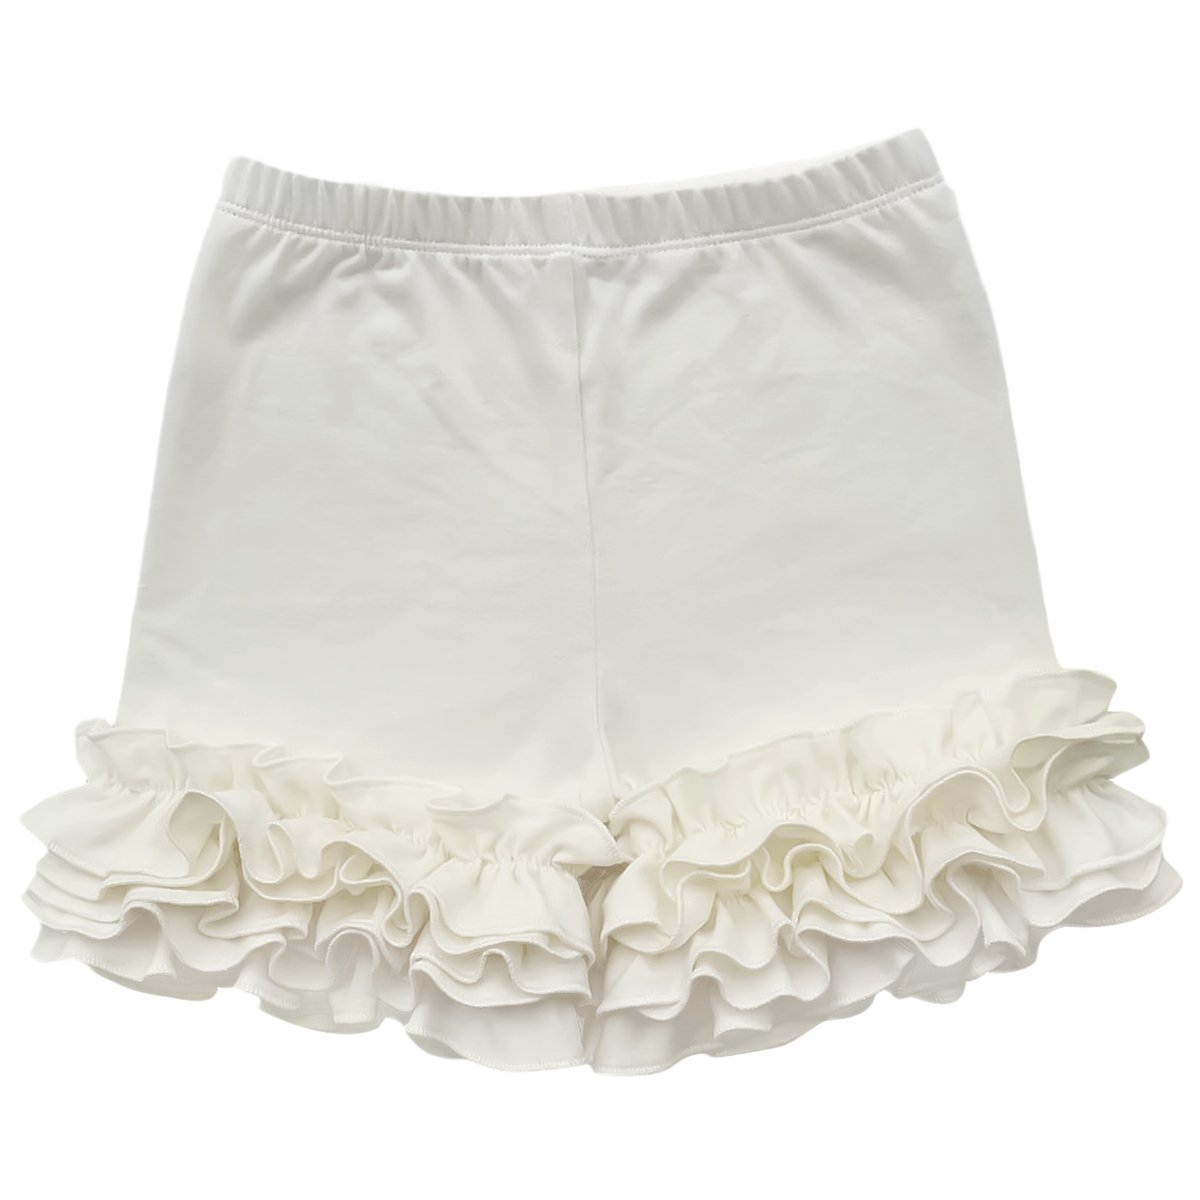 IBTOM CASTLE Baby Girls Double Icing Ruffle Cotton Shorts Bottoms Boutique Pants Off White 2-3T